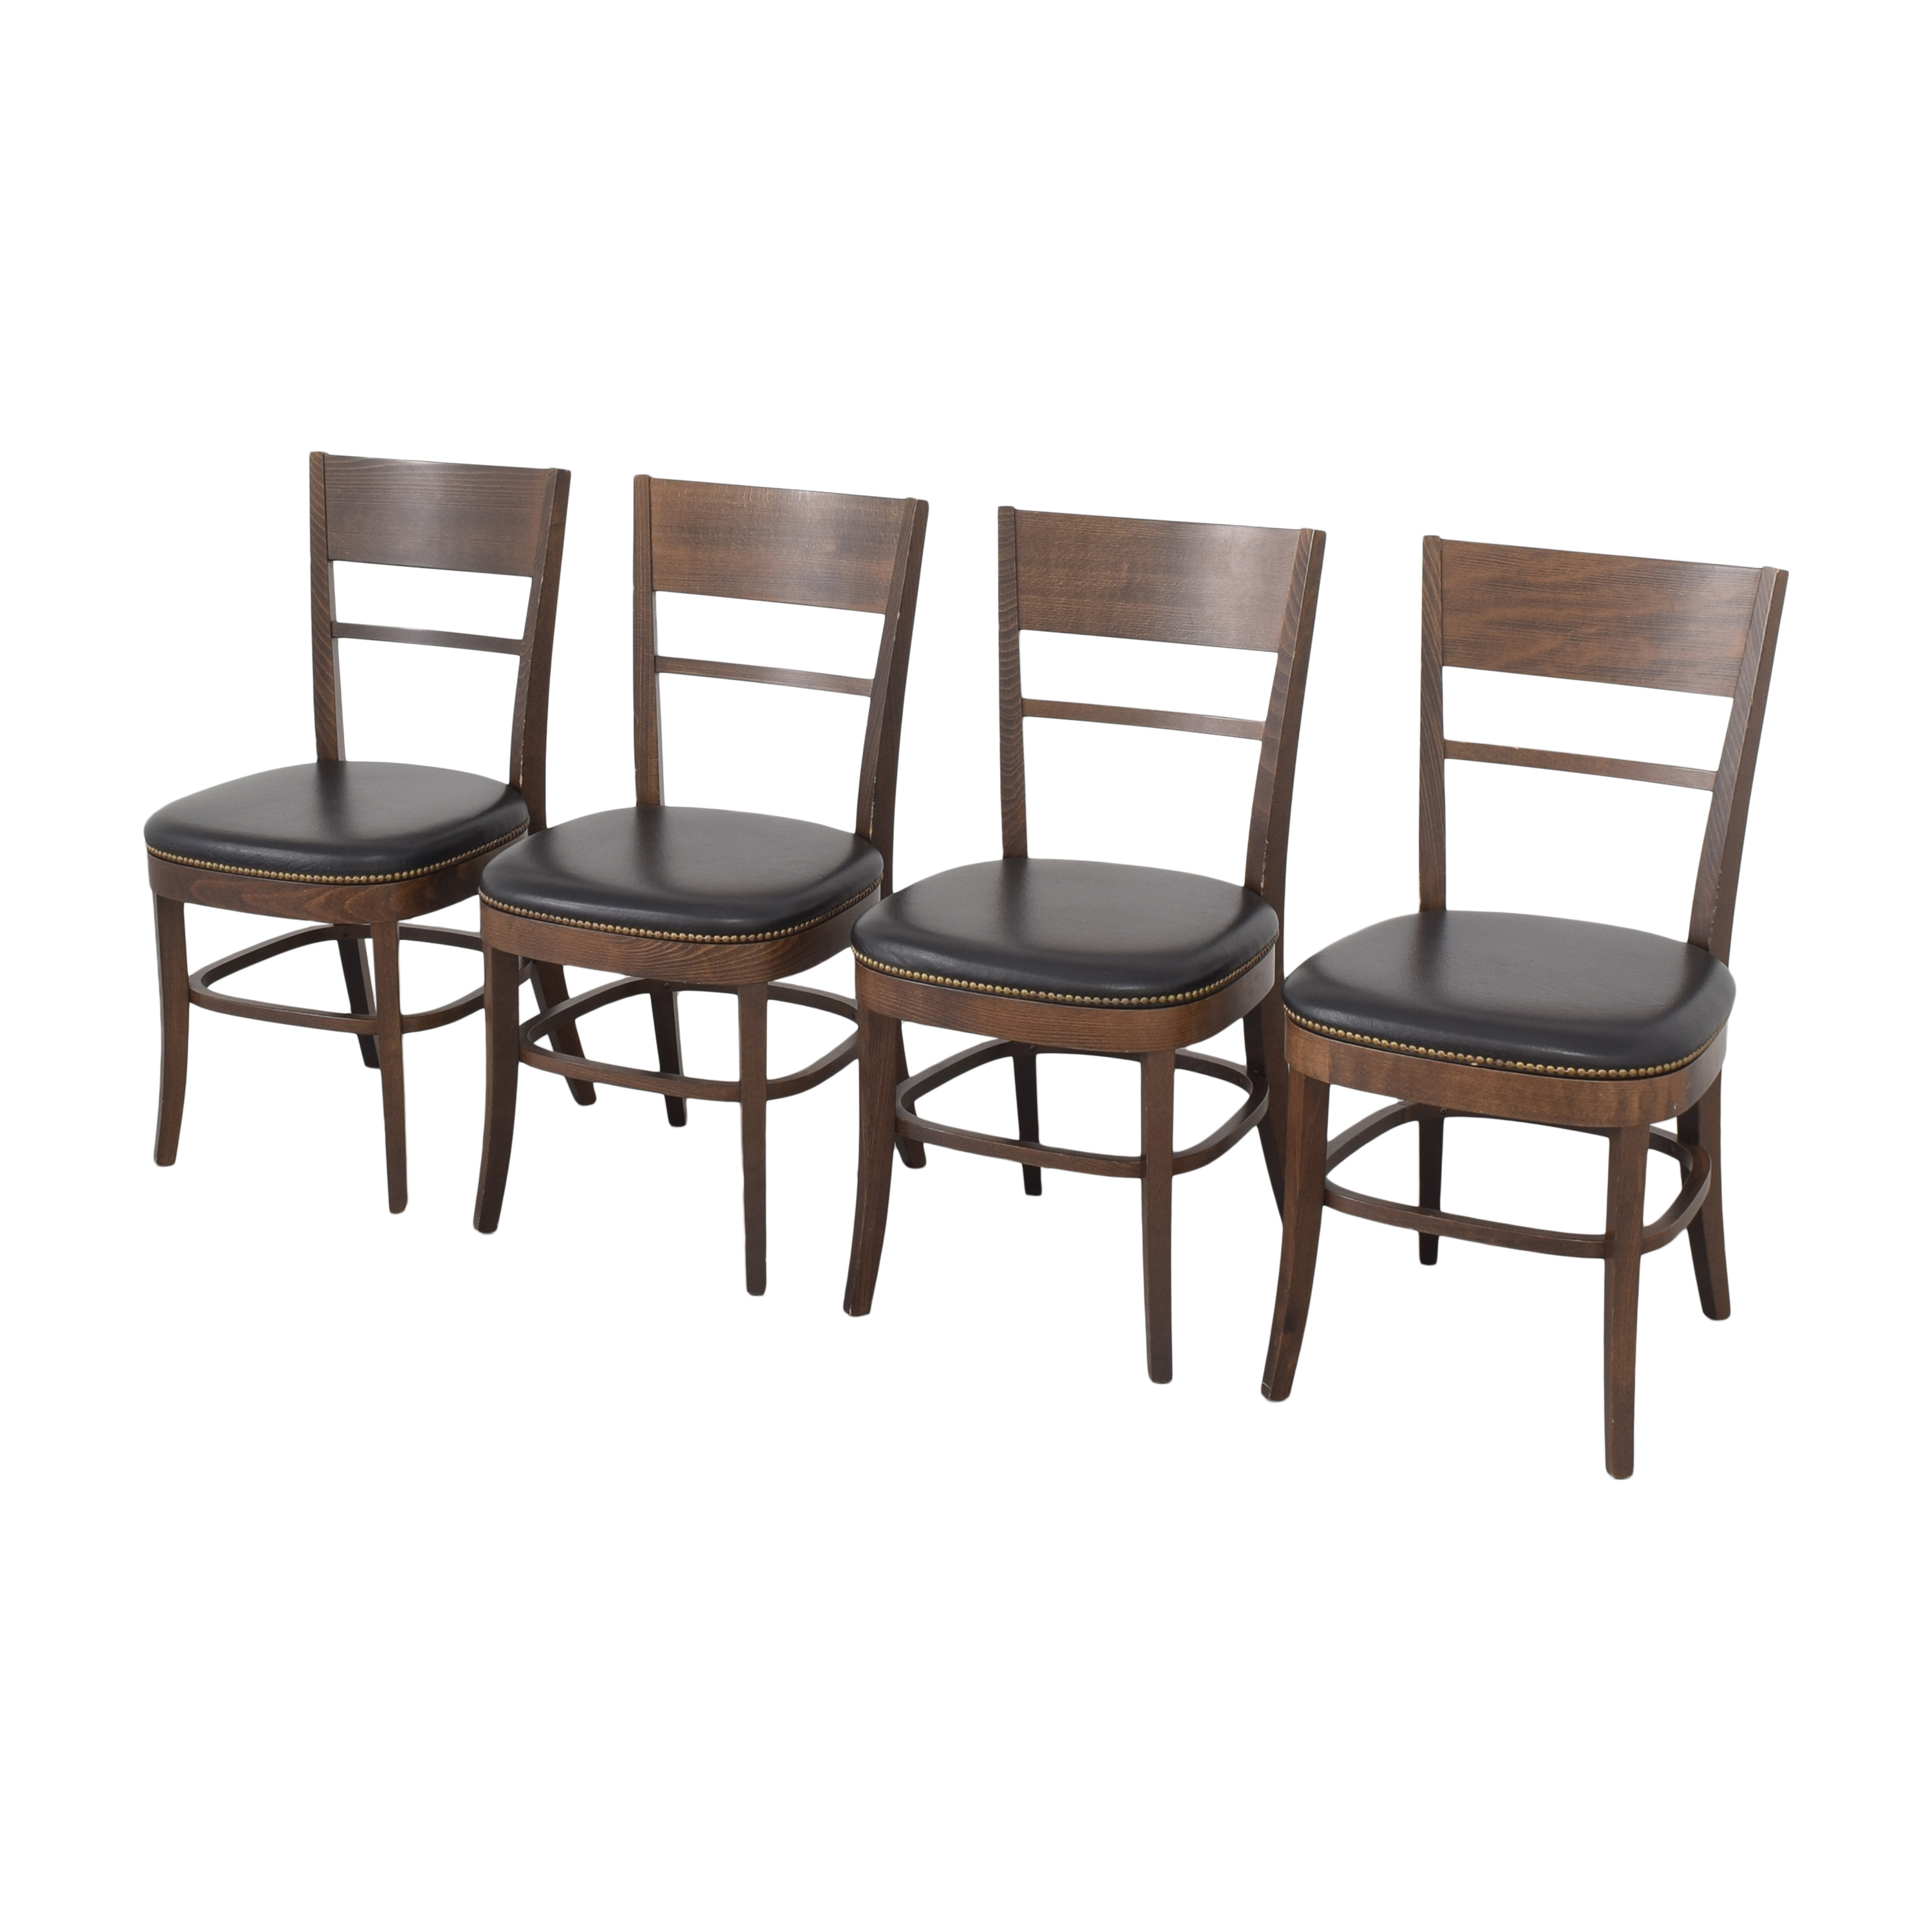 Pottery Barn Pottery Barn Nailhead Dining Chairs Dining Chairs